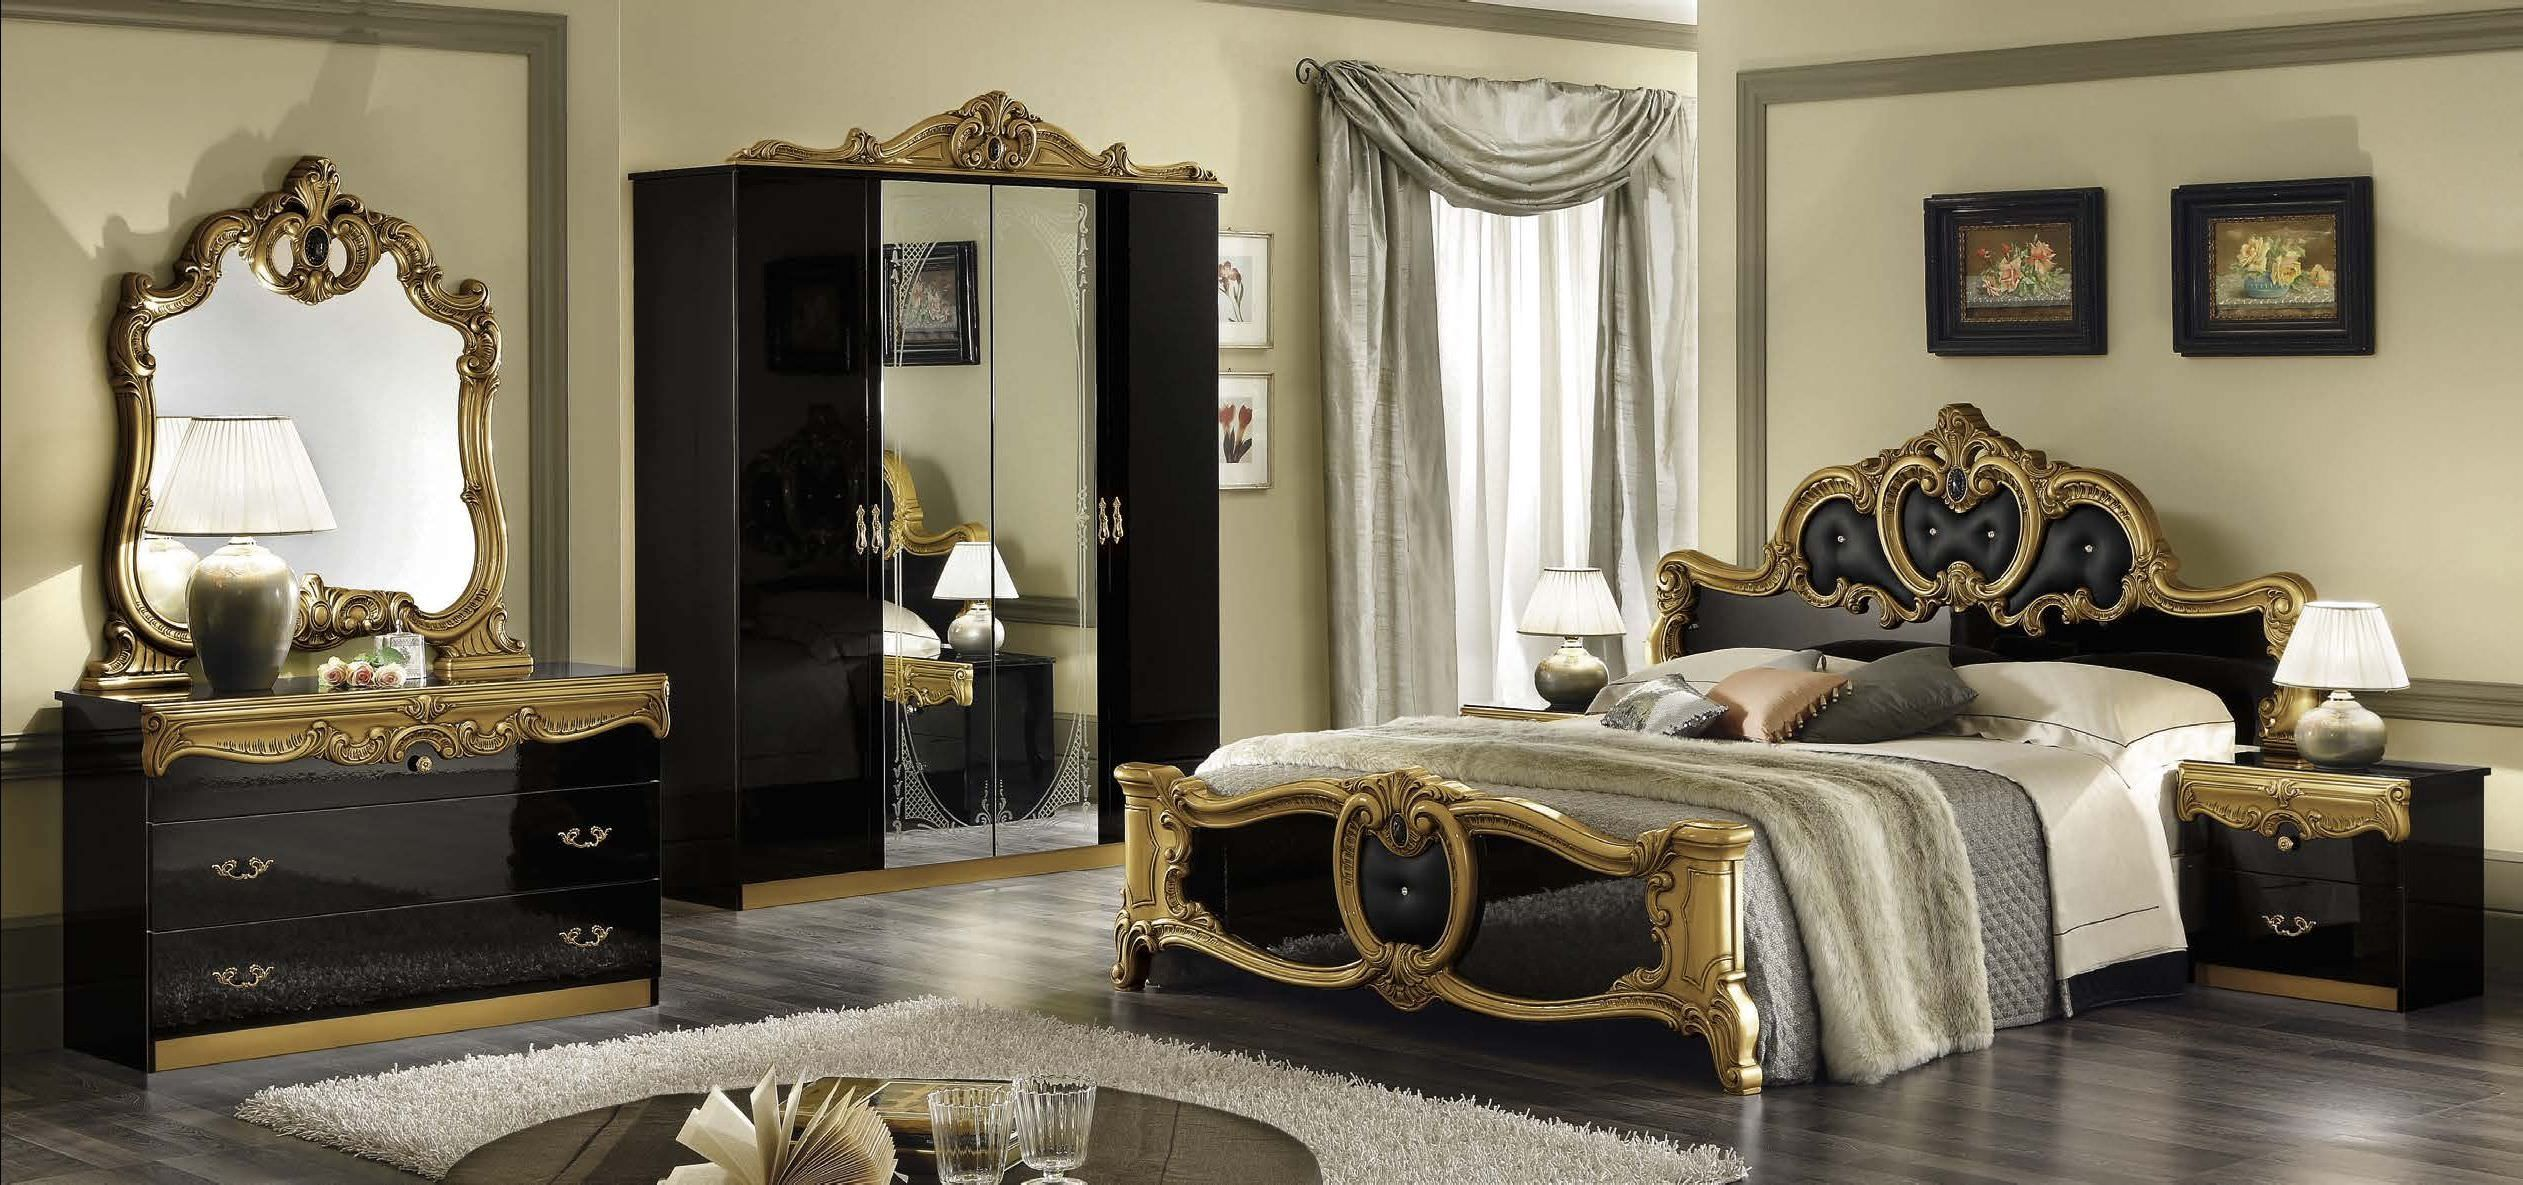 decoration marvelous black and gold bedroom design black gold bedroom decorating design furniture ideas decoration idea - Black Bedroom Furniture Decorating Ideas